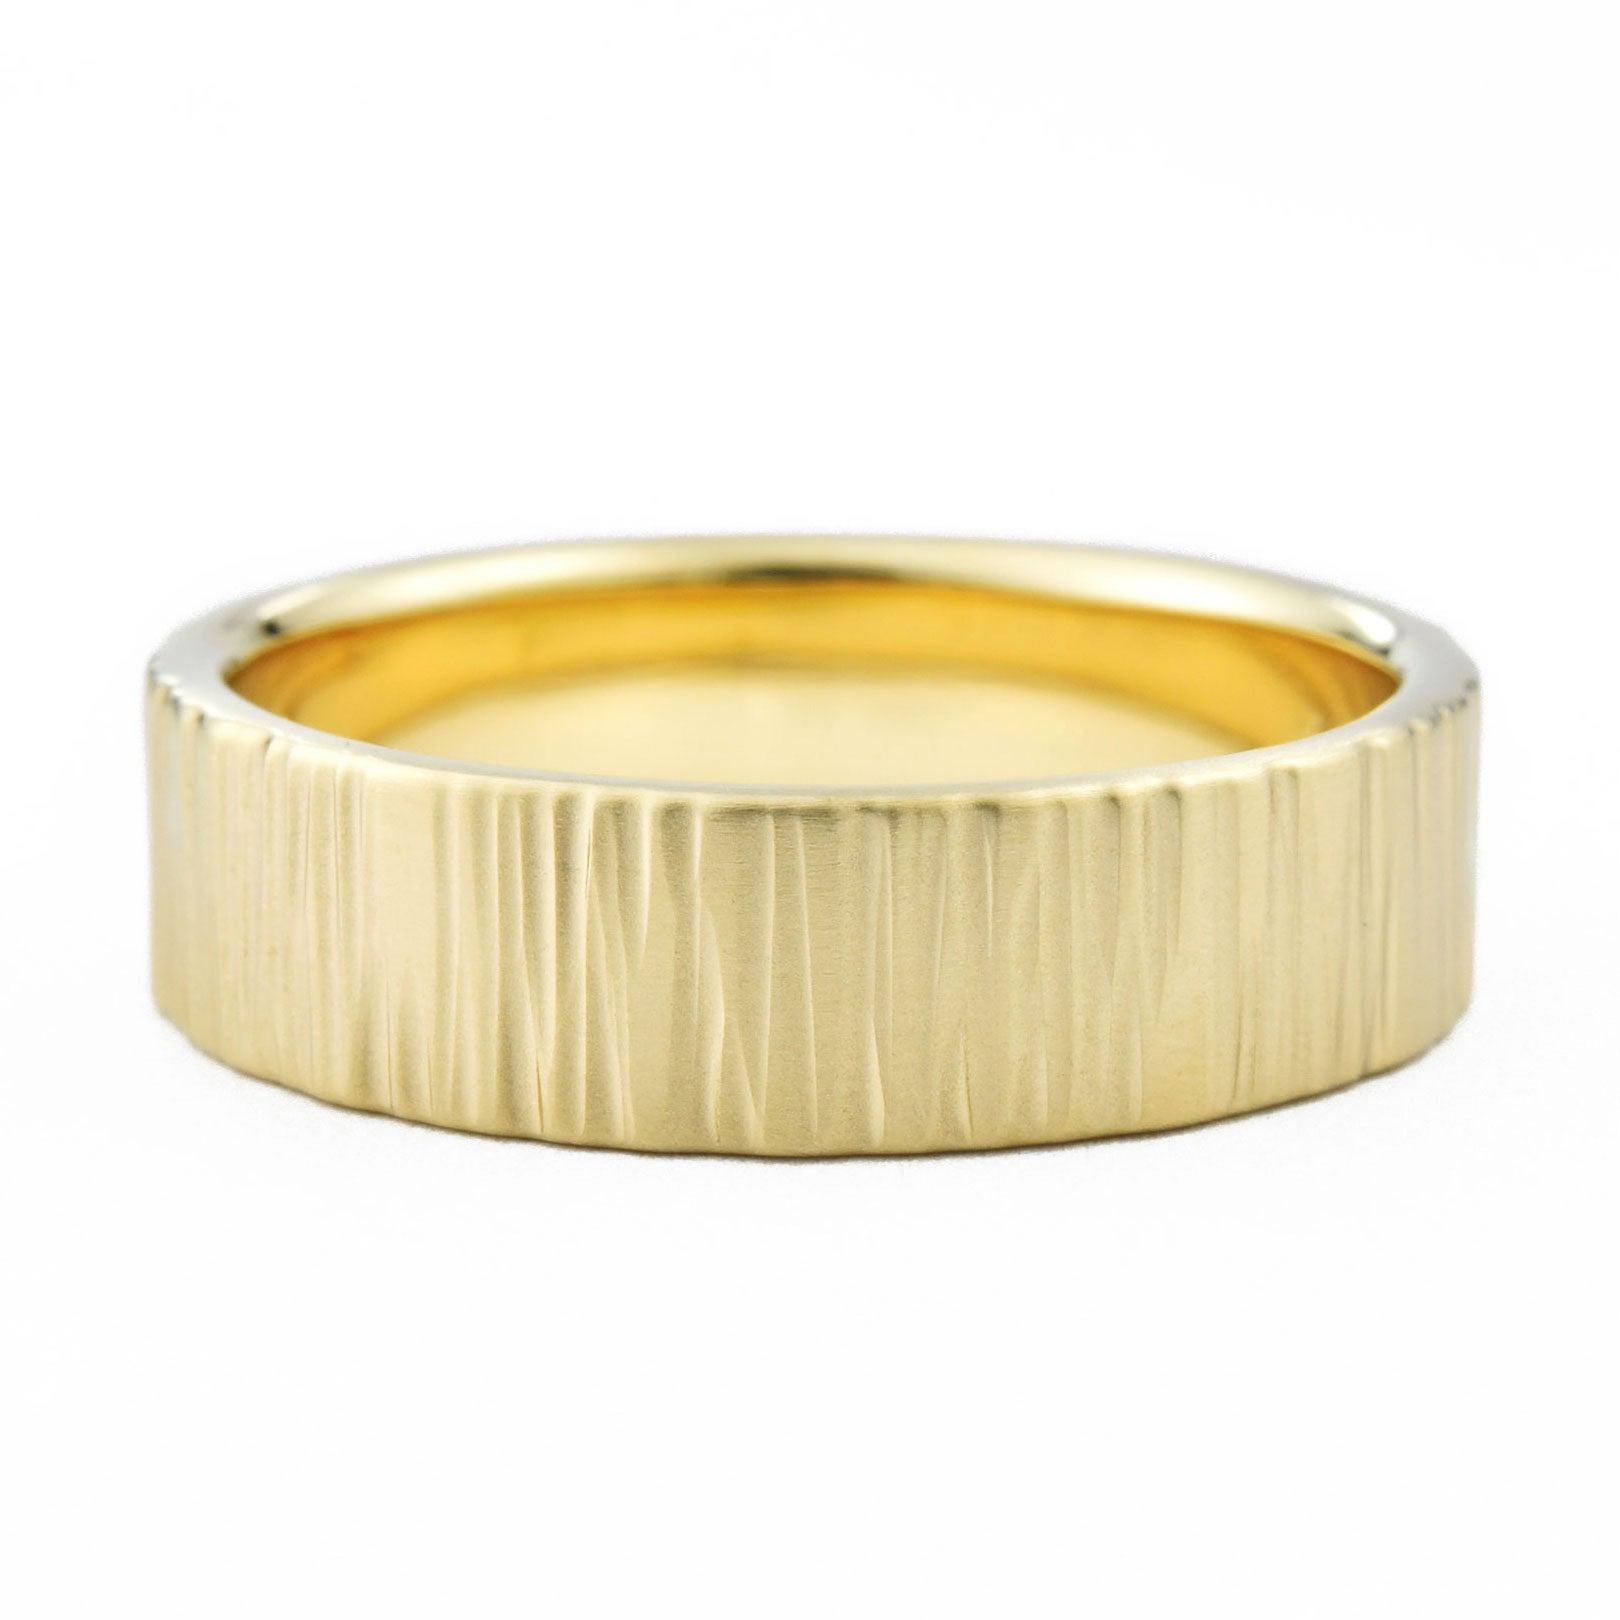 6mm Men's Birch Wedding Band in yellow gold